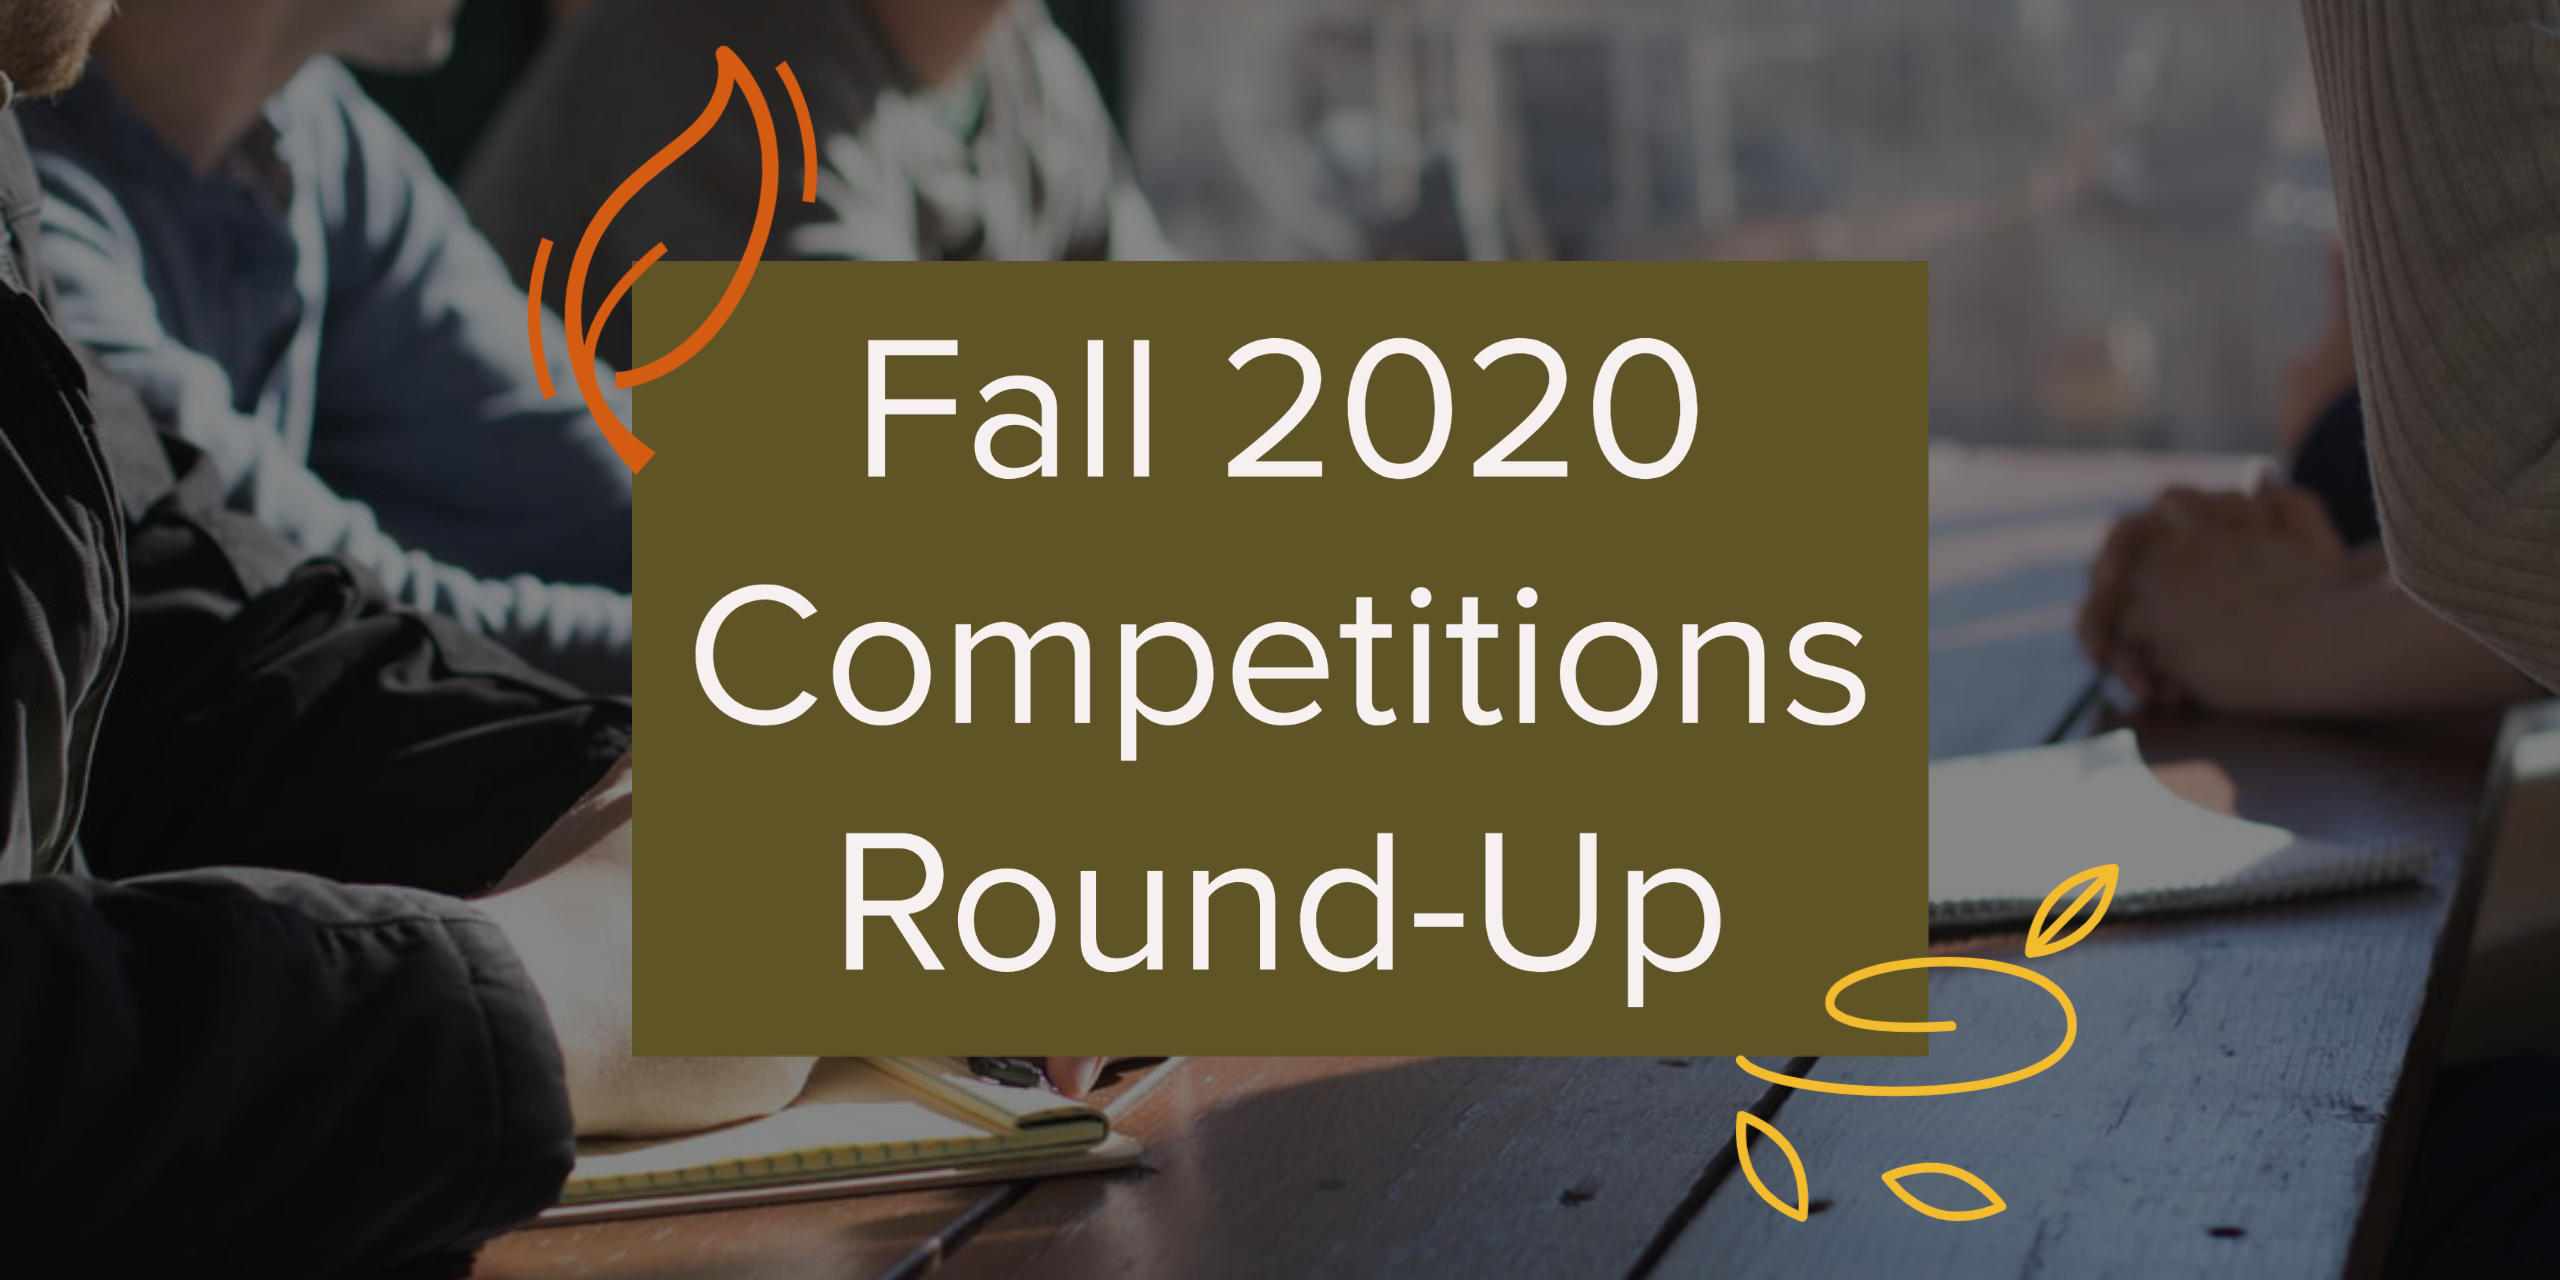 Fall 2020 Competitions Round-Up